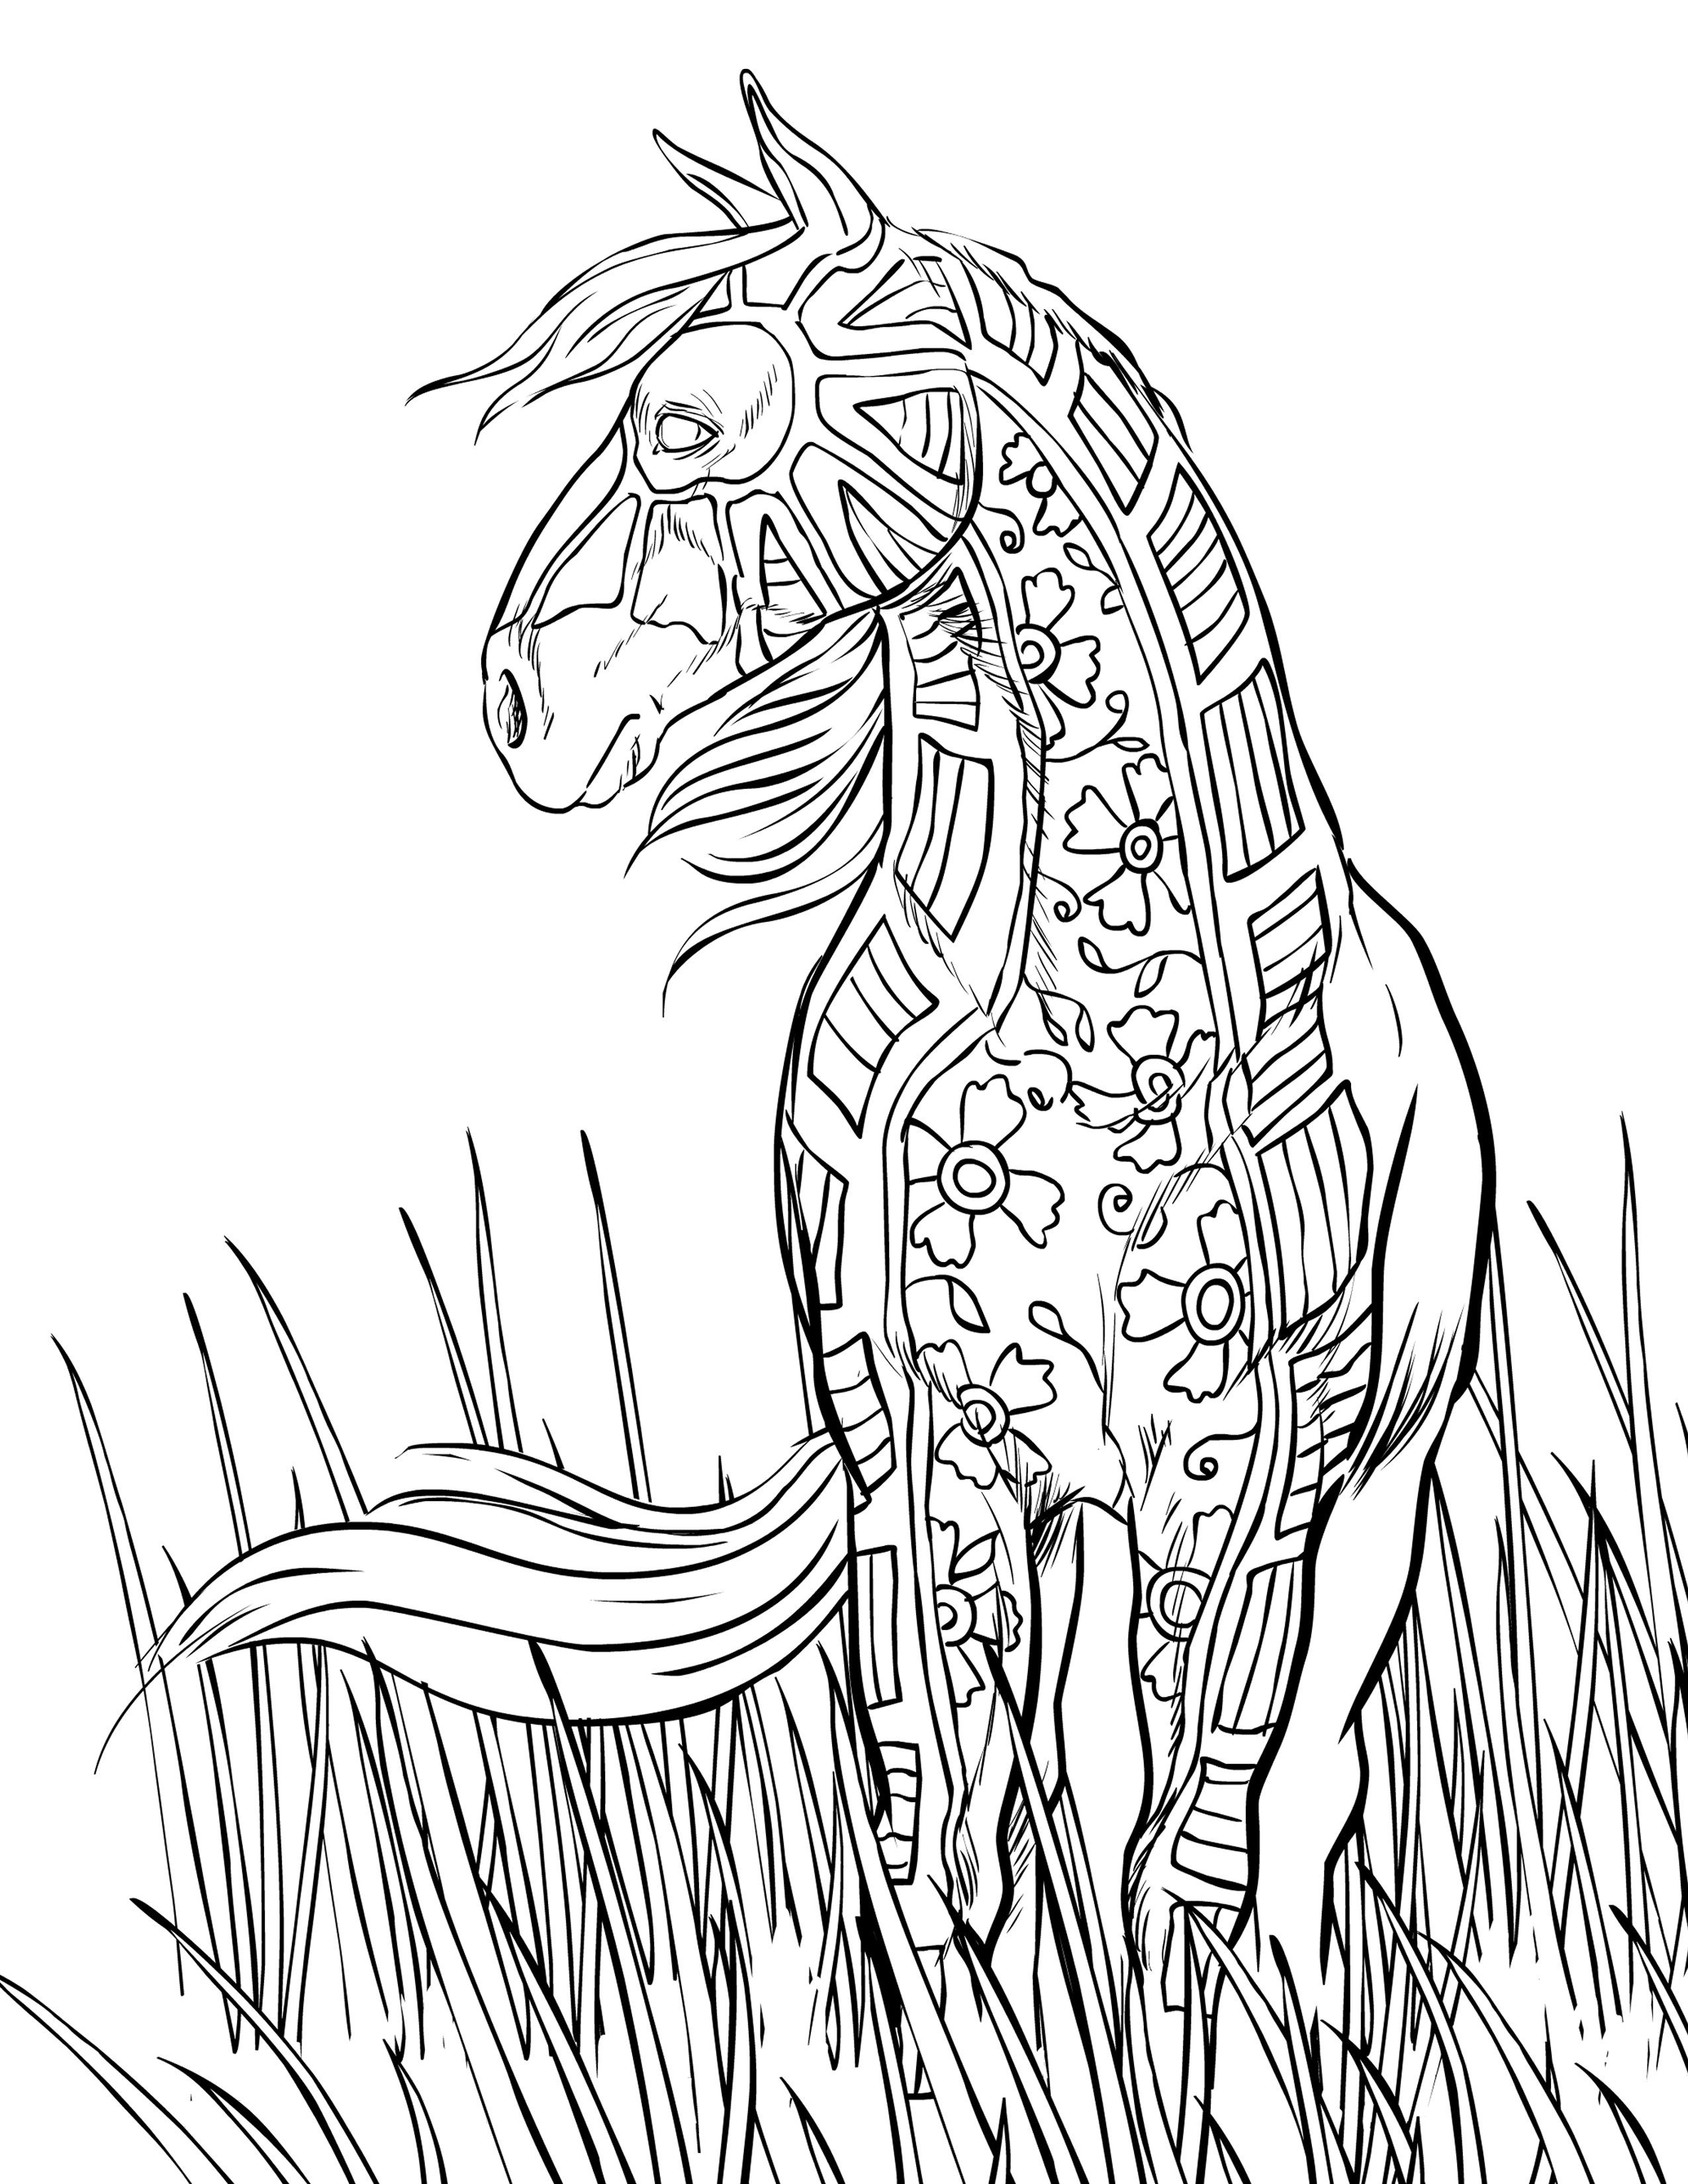 Real Horse Coloring Pages at GetDrawings.com | Free for ...